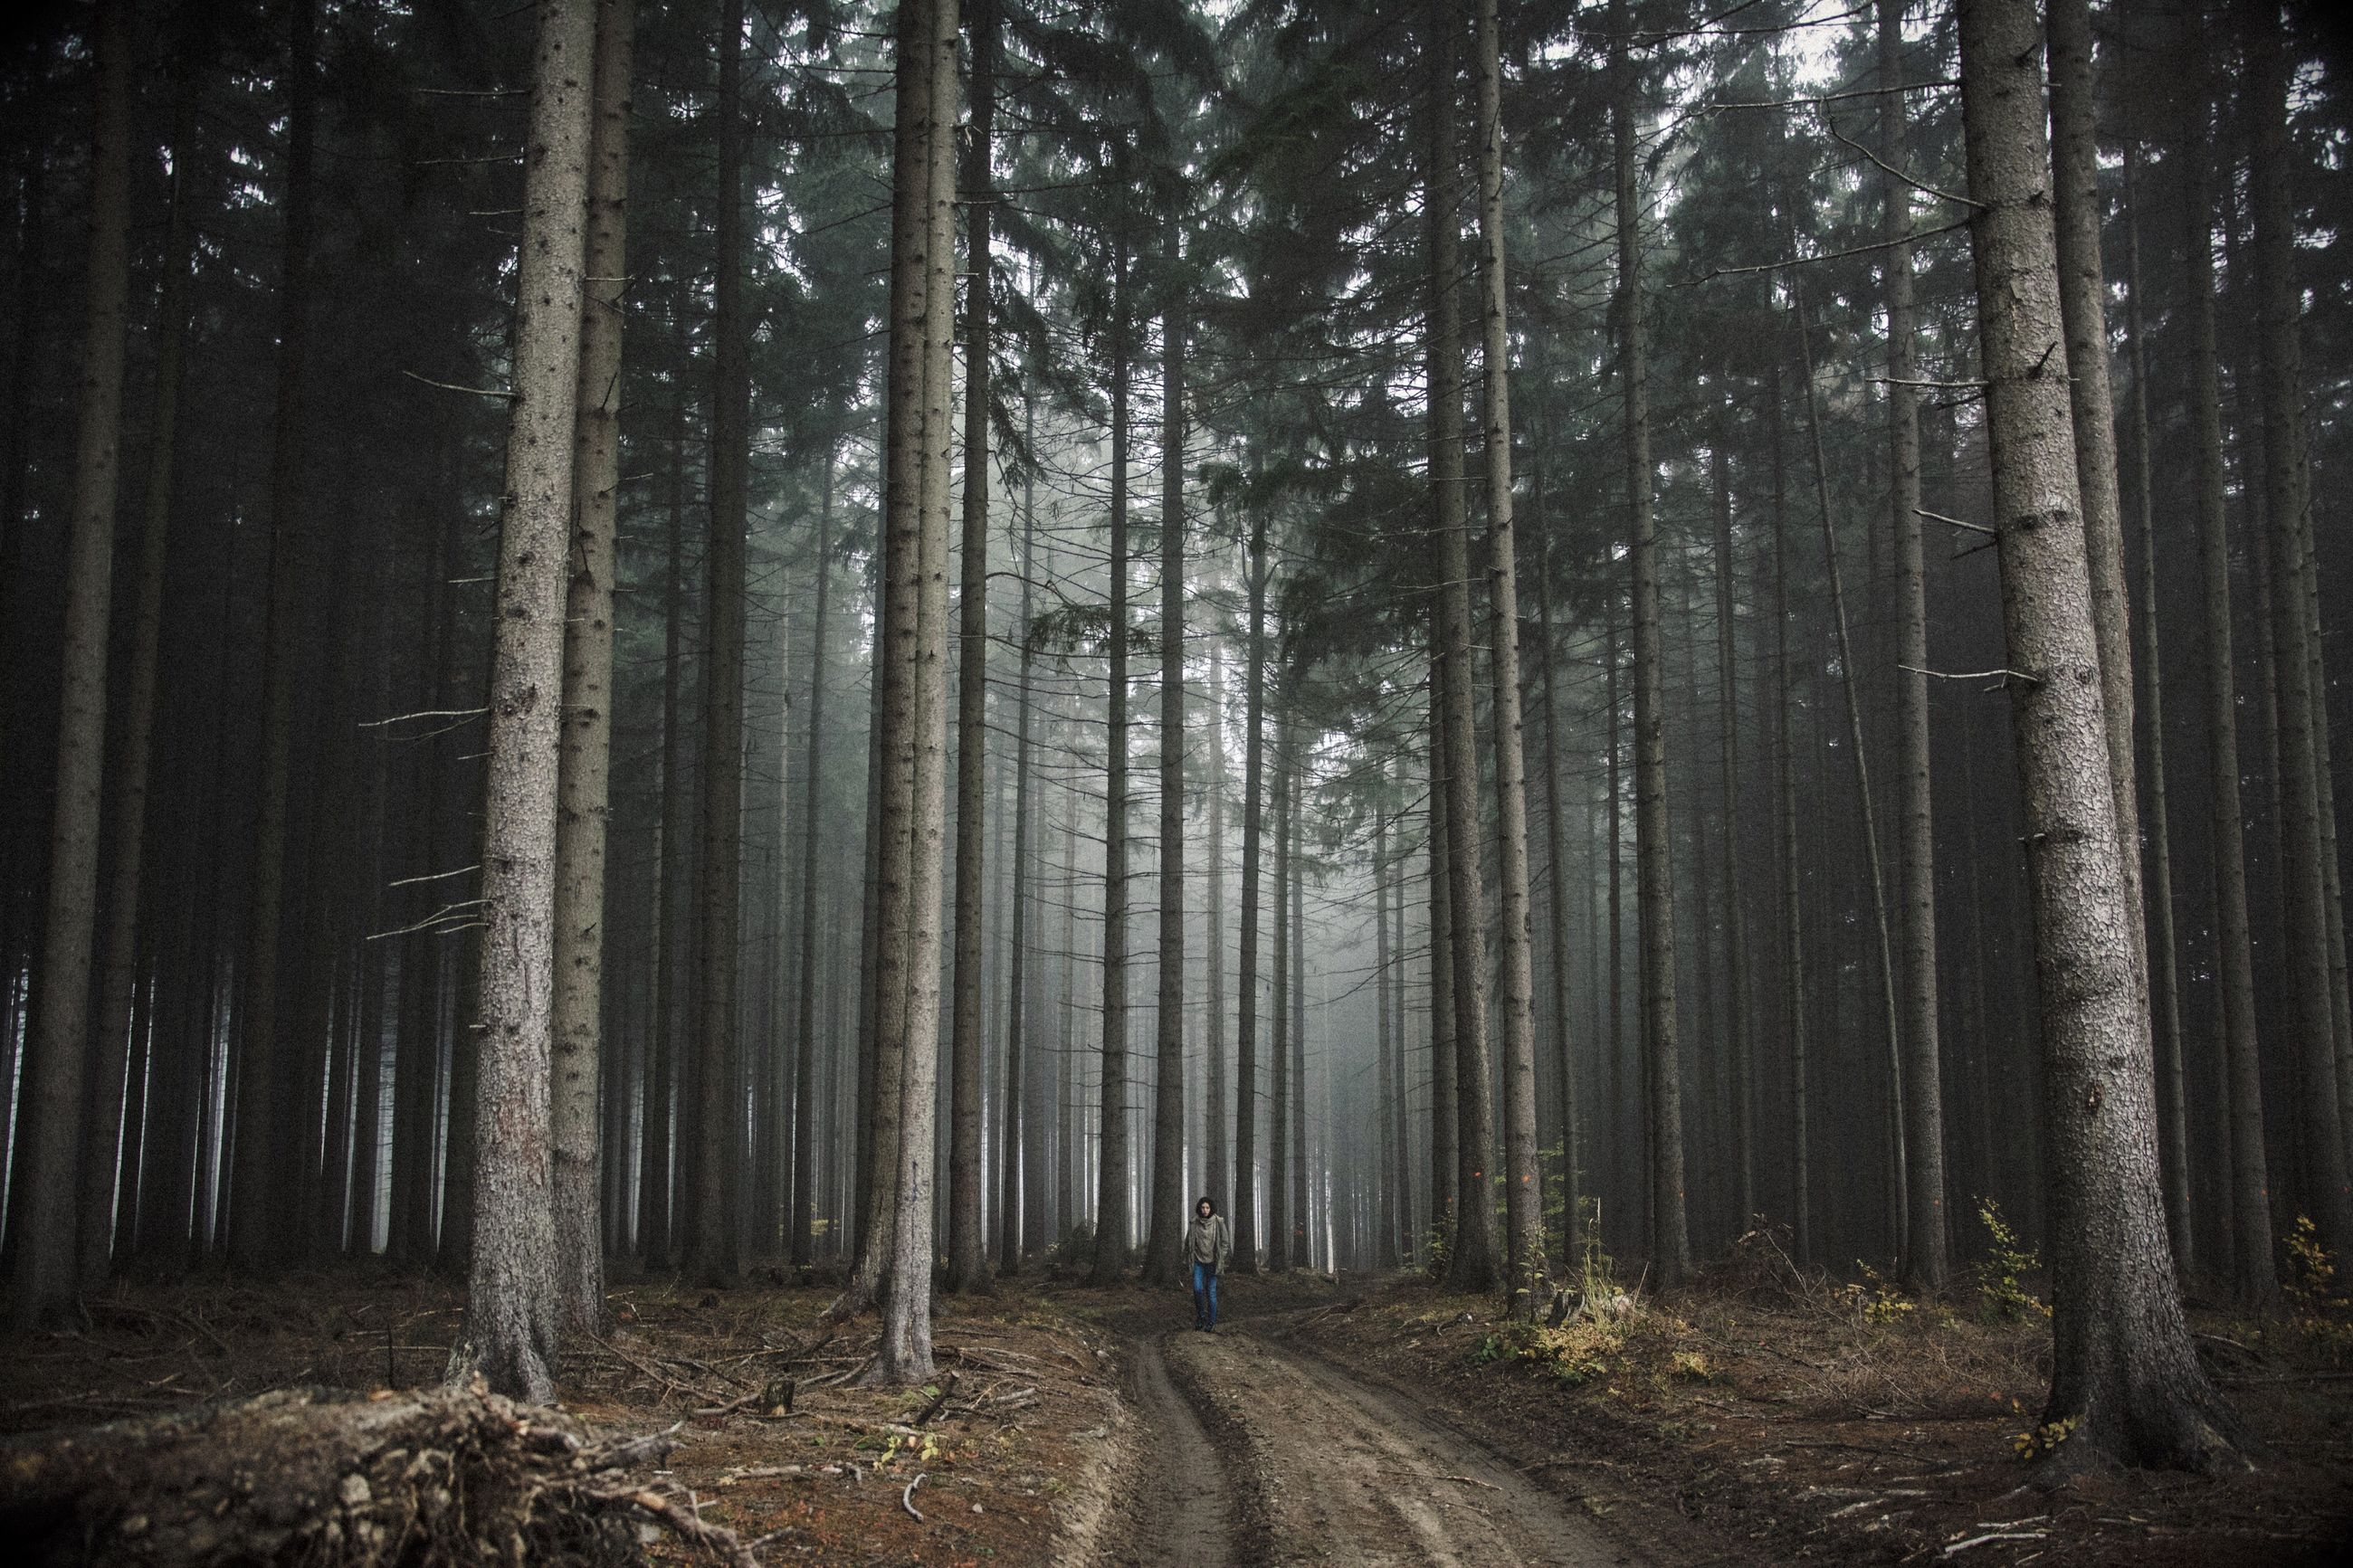 forest, tree trunk, woodland, tranquility, tree, tranquil scene, dirt road, non-urban scene, beauty in nature, scenics, nature, landscape, tall - high, growth, outdoors, abundance, the way forward, remote, diminishing perspective, empty road, tree area, tall